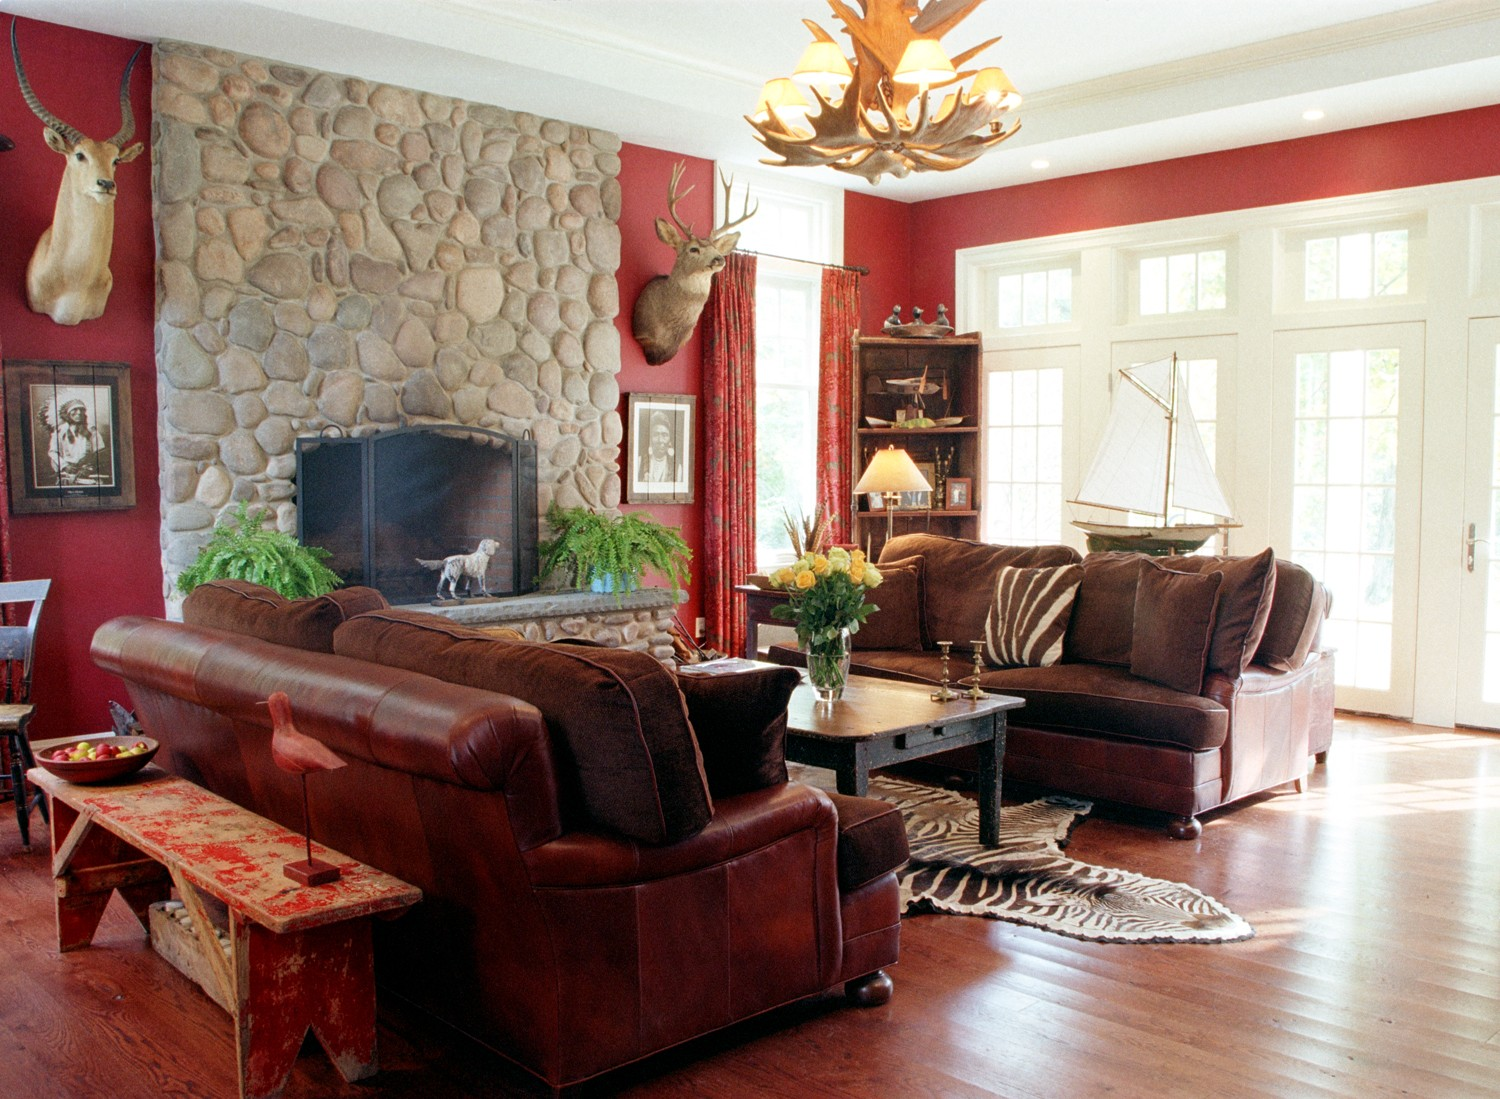 living-room-color-schemes Ideas for the Living Room Space to Offer a More Organized Look